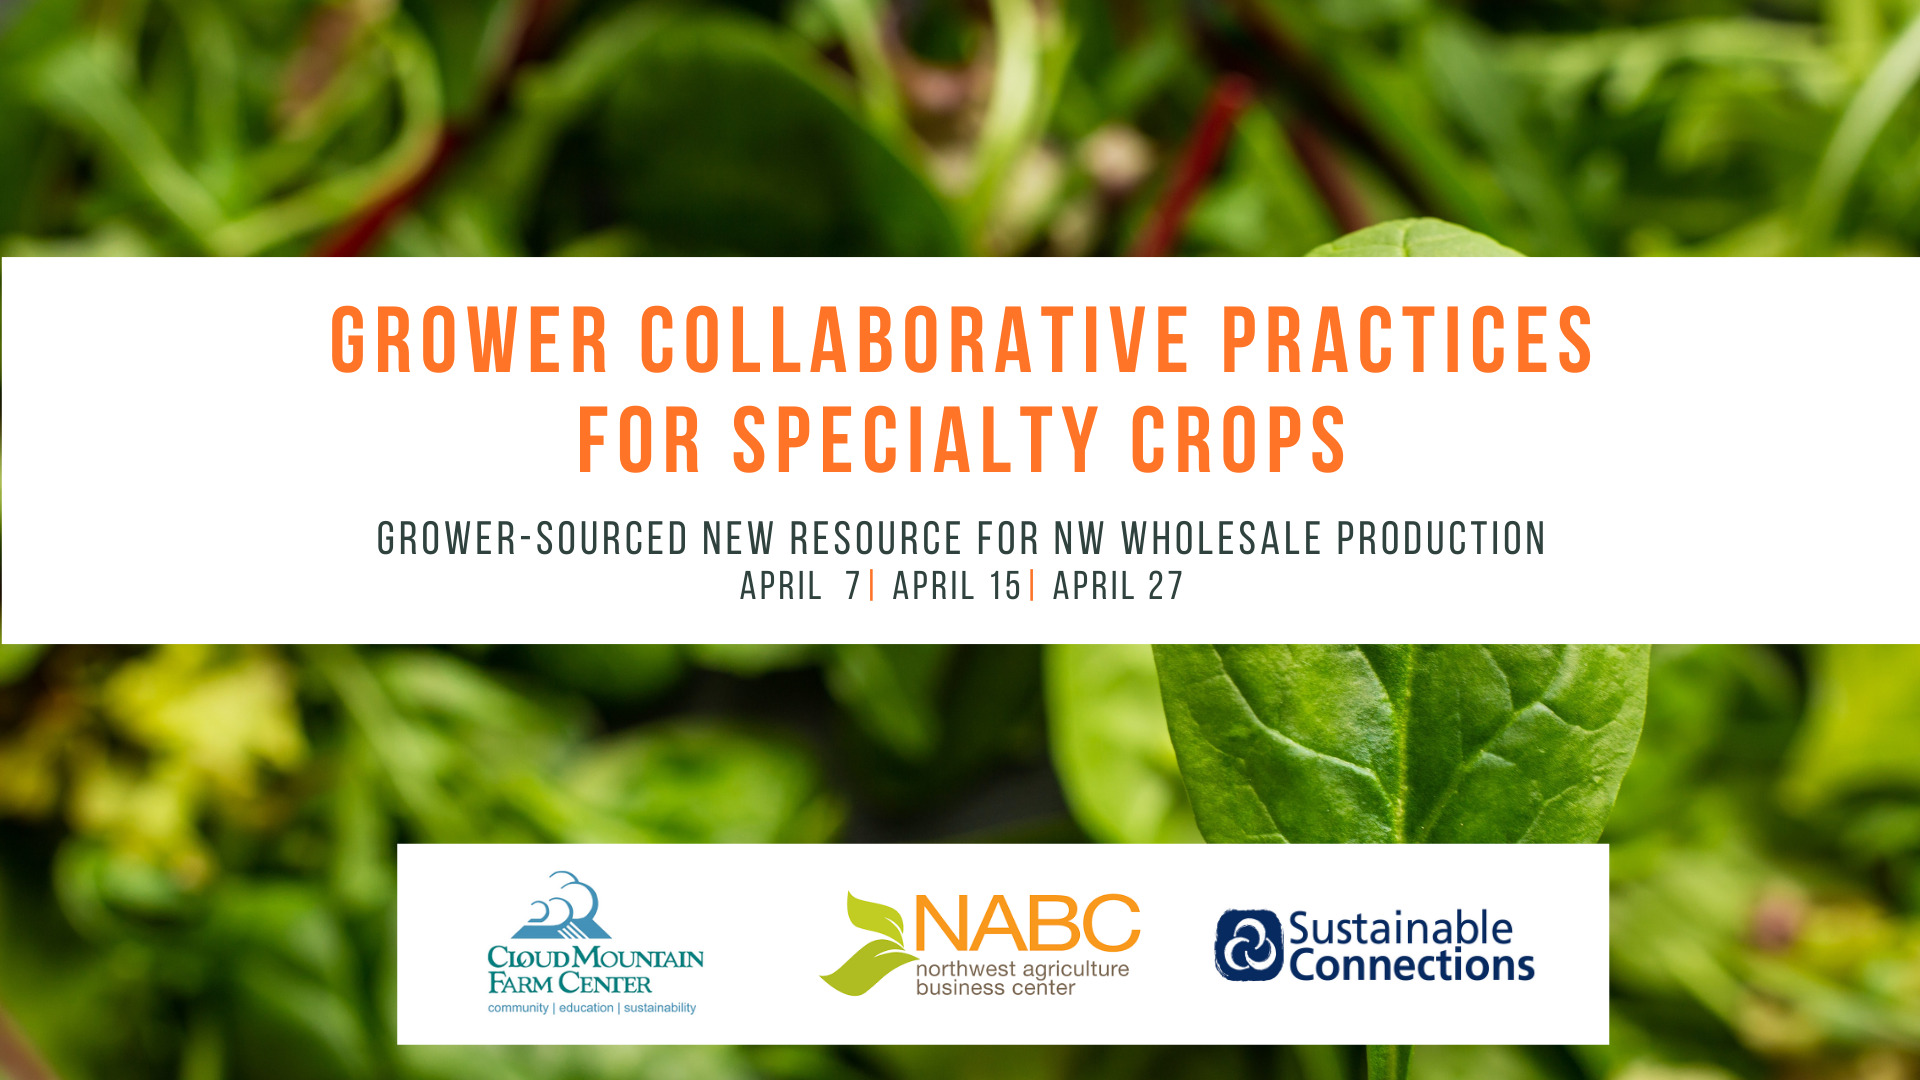 Grower Collaborative Practices for Specialty Crops